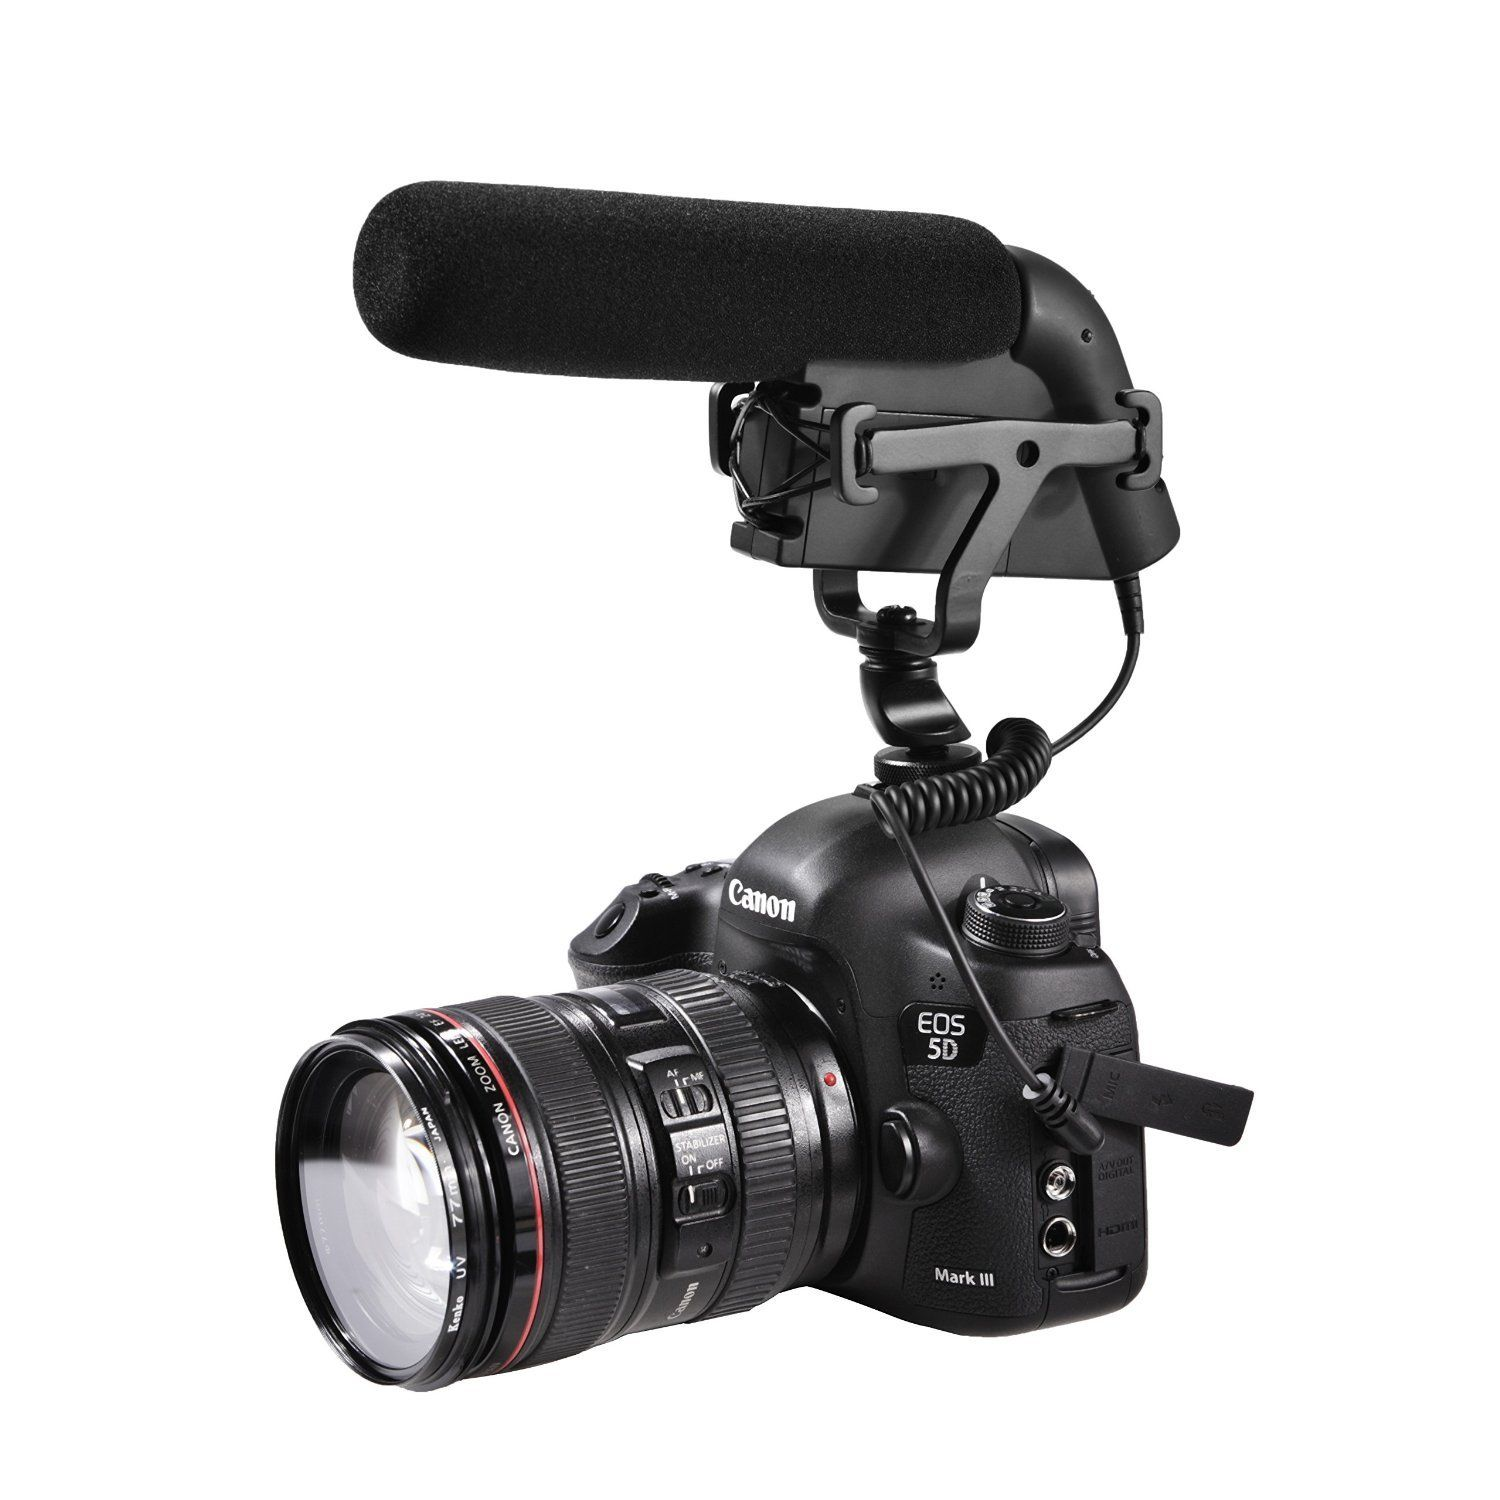 Sevenoak SK-CM300 Shotgun Video Condensor Microphone for DSLR Cameras and Camcorders